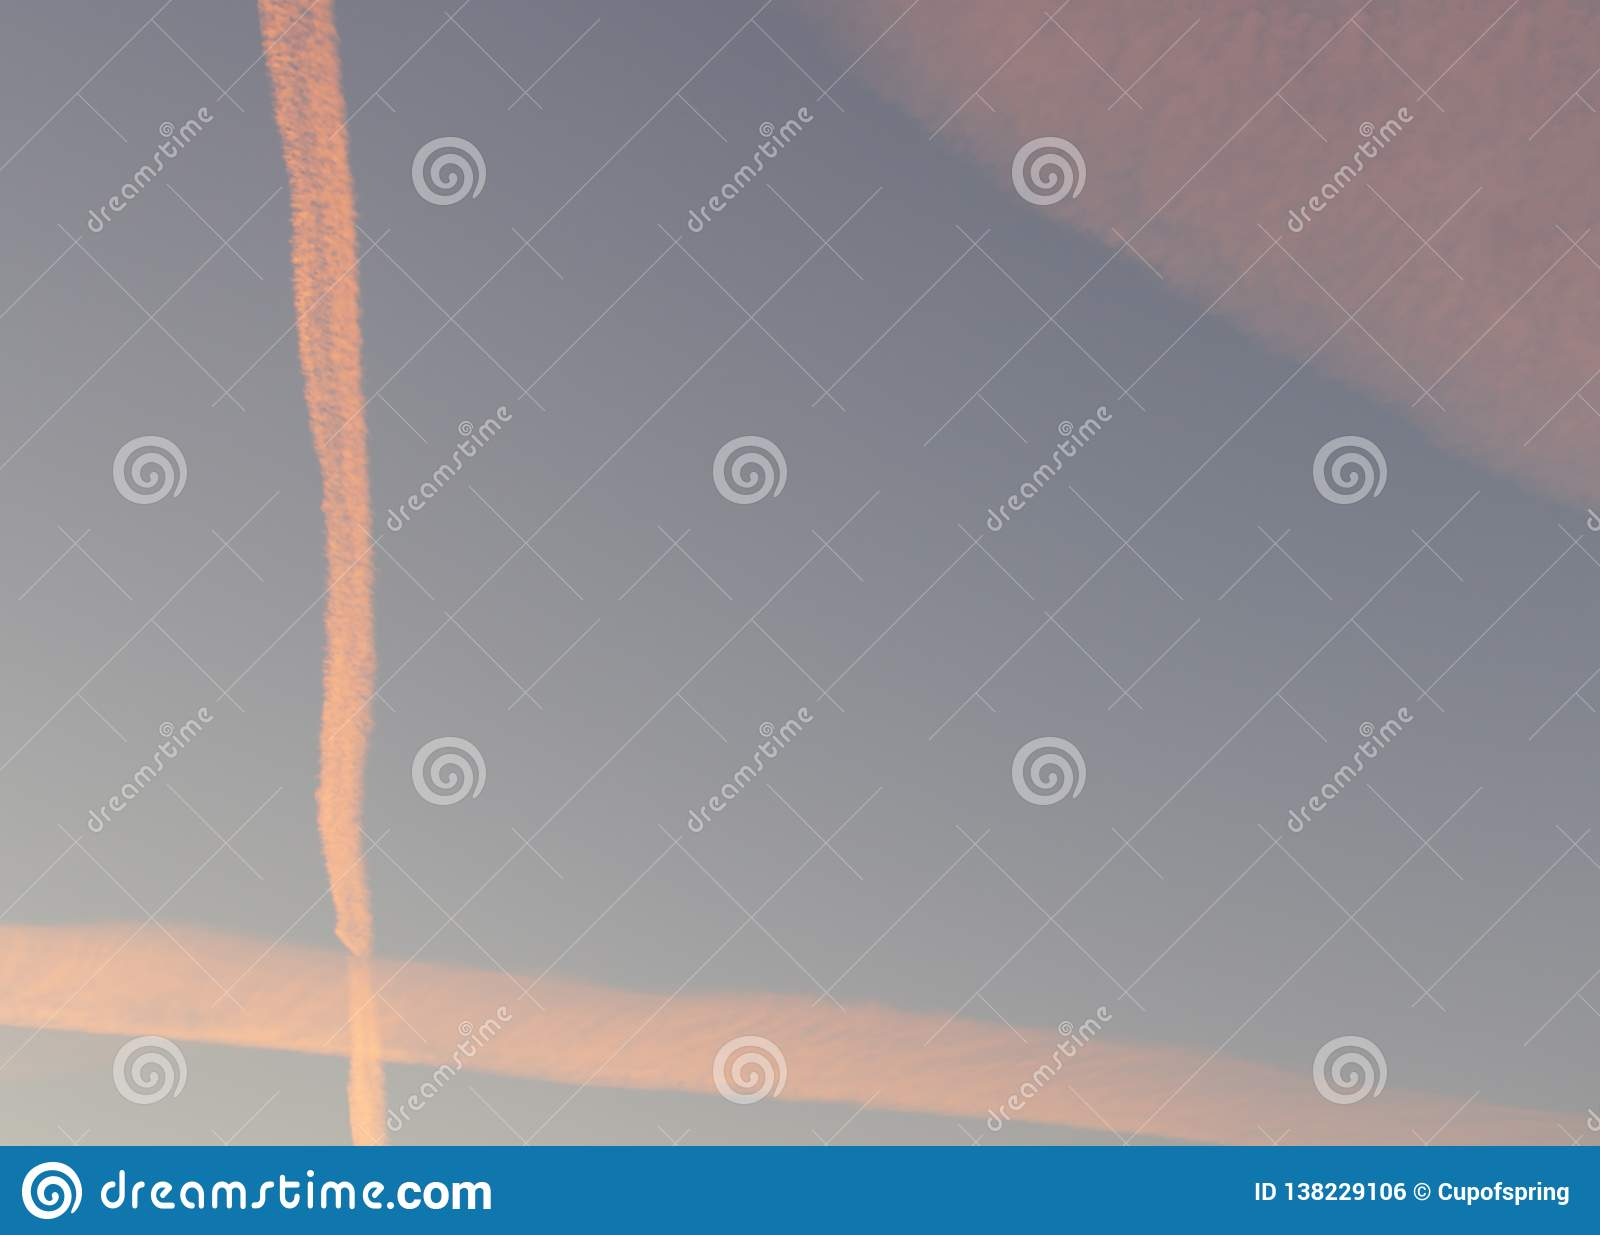 Evening golden hours blue sky with clouds and orange condensation trails of planes